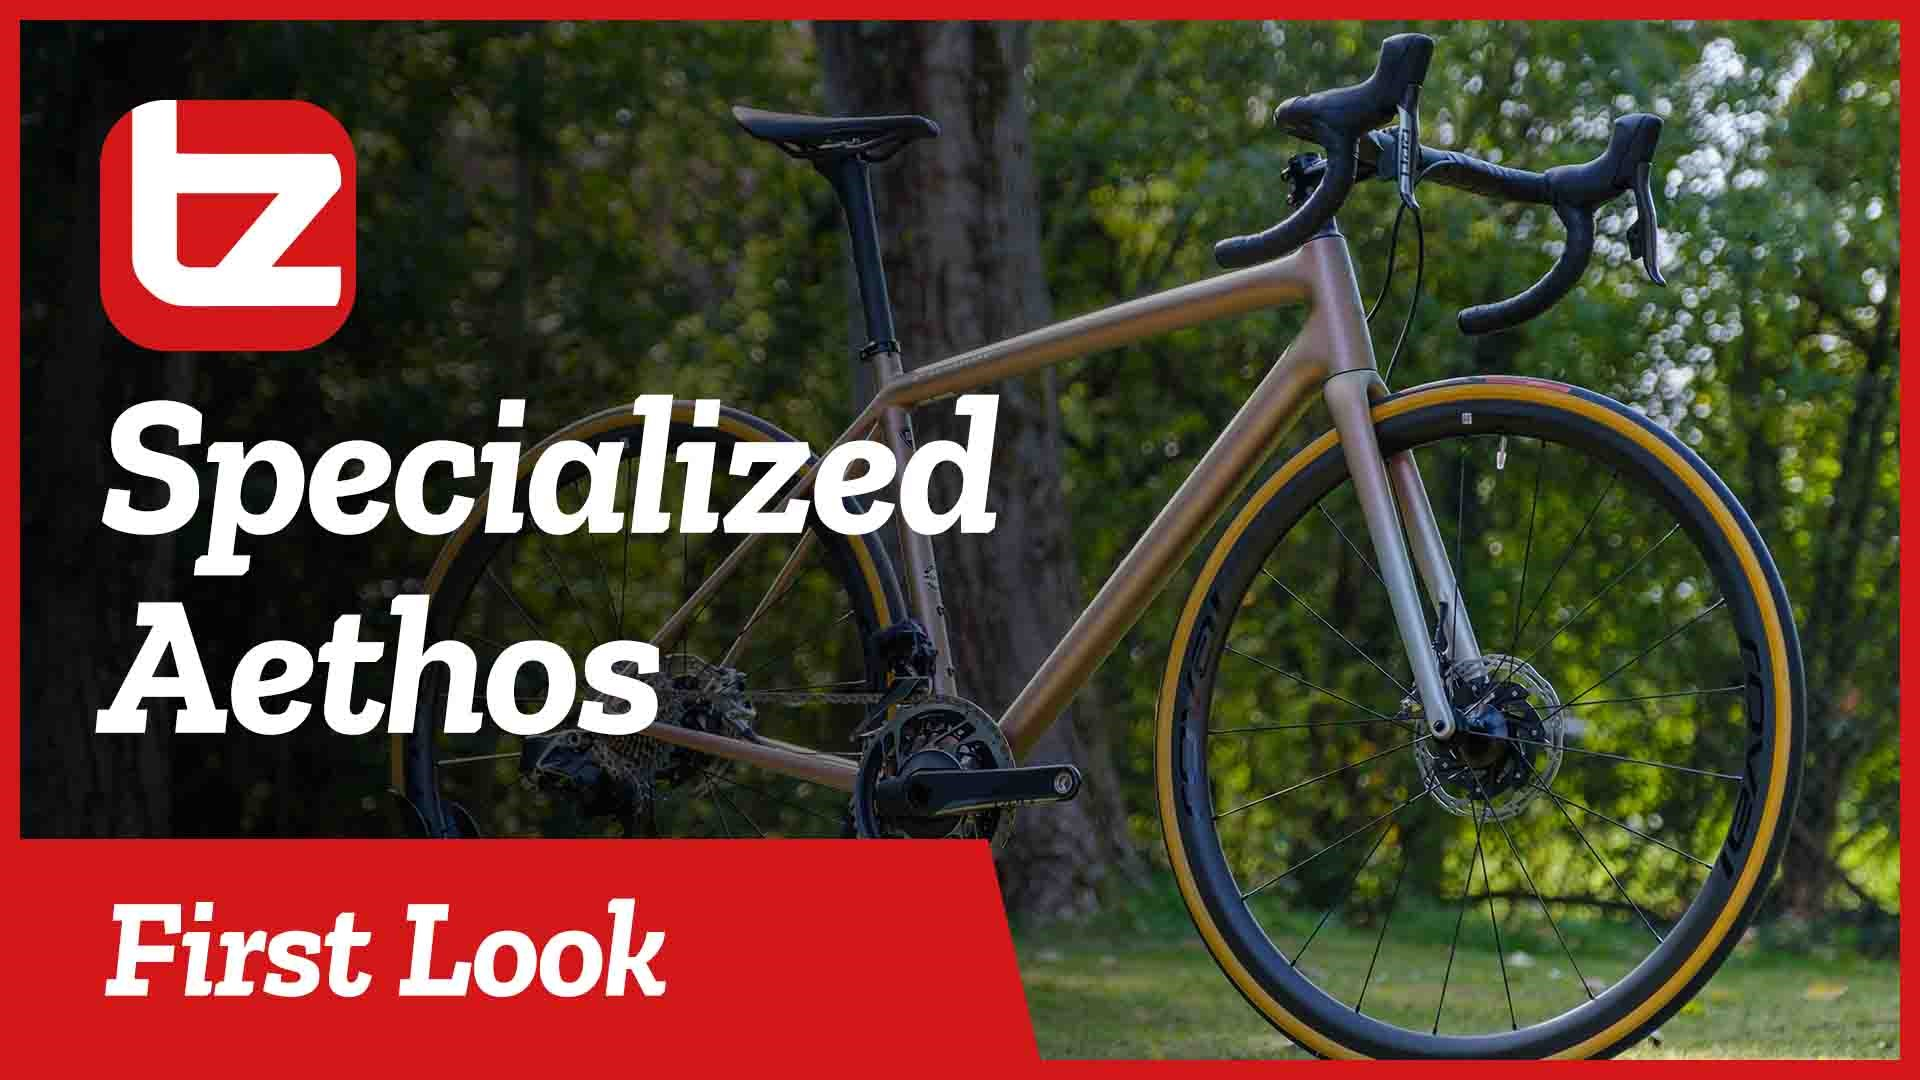 New Specialized Aethos | A Road Bike That Breaks All The Rules! | First Look | Tredz Bikes